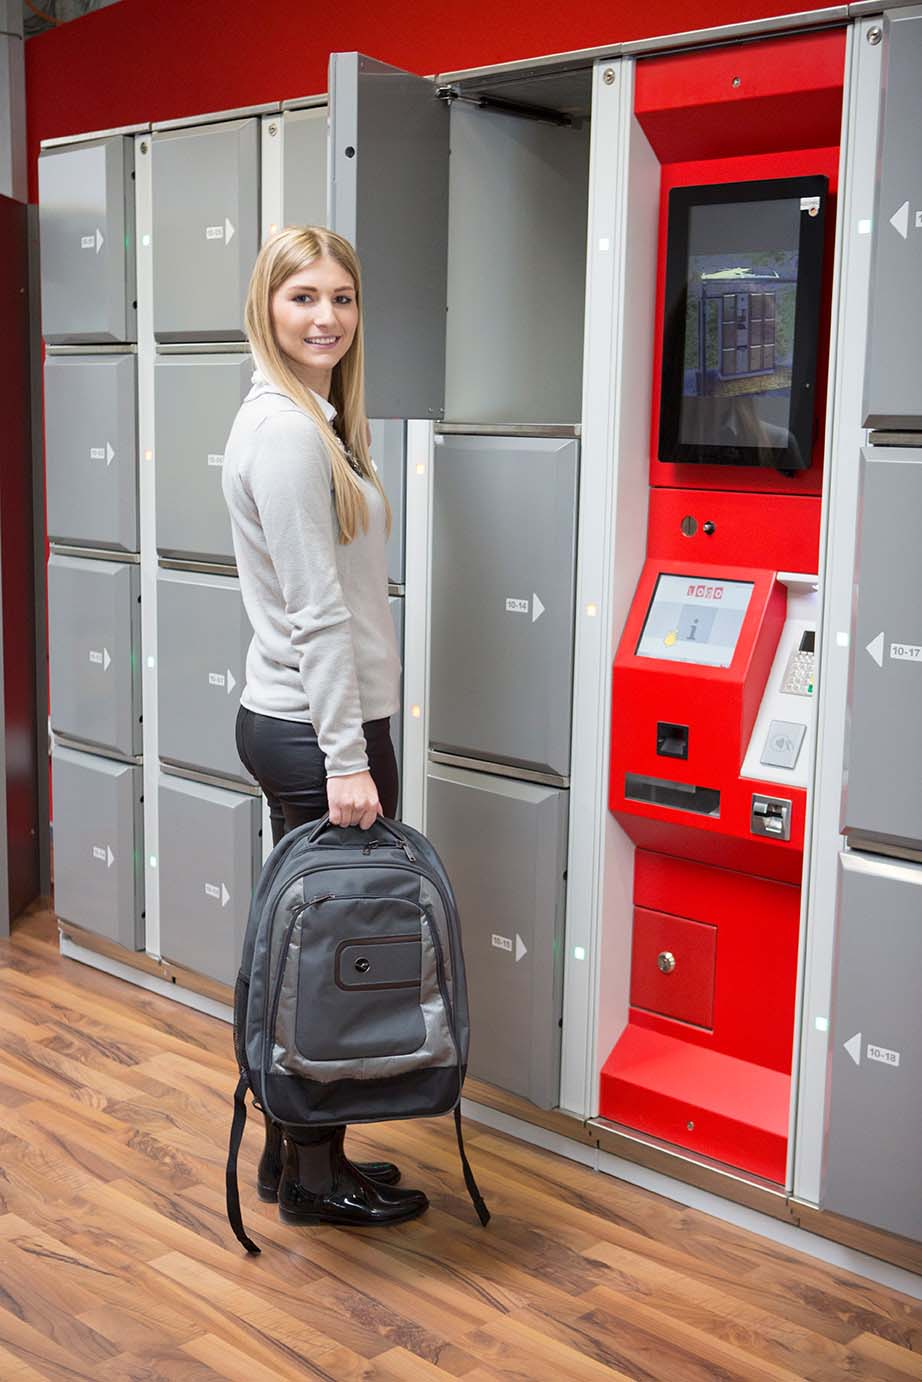 Smart lockers Locksafe5 – steel lockers: safe storage of valuables. Can be used as employee lockers.